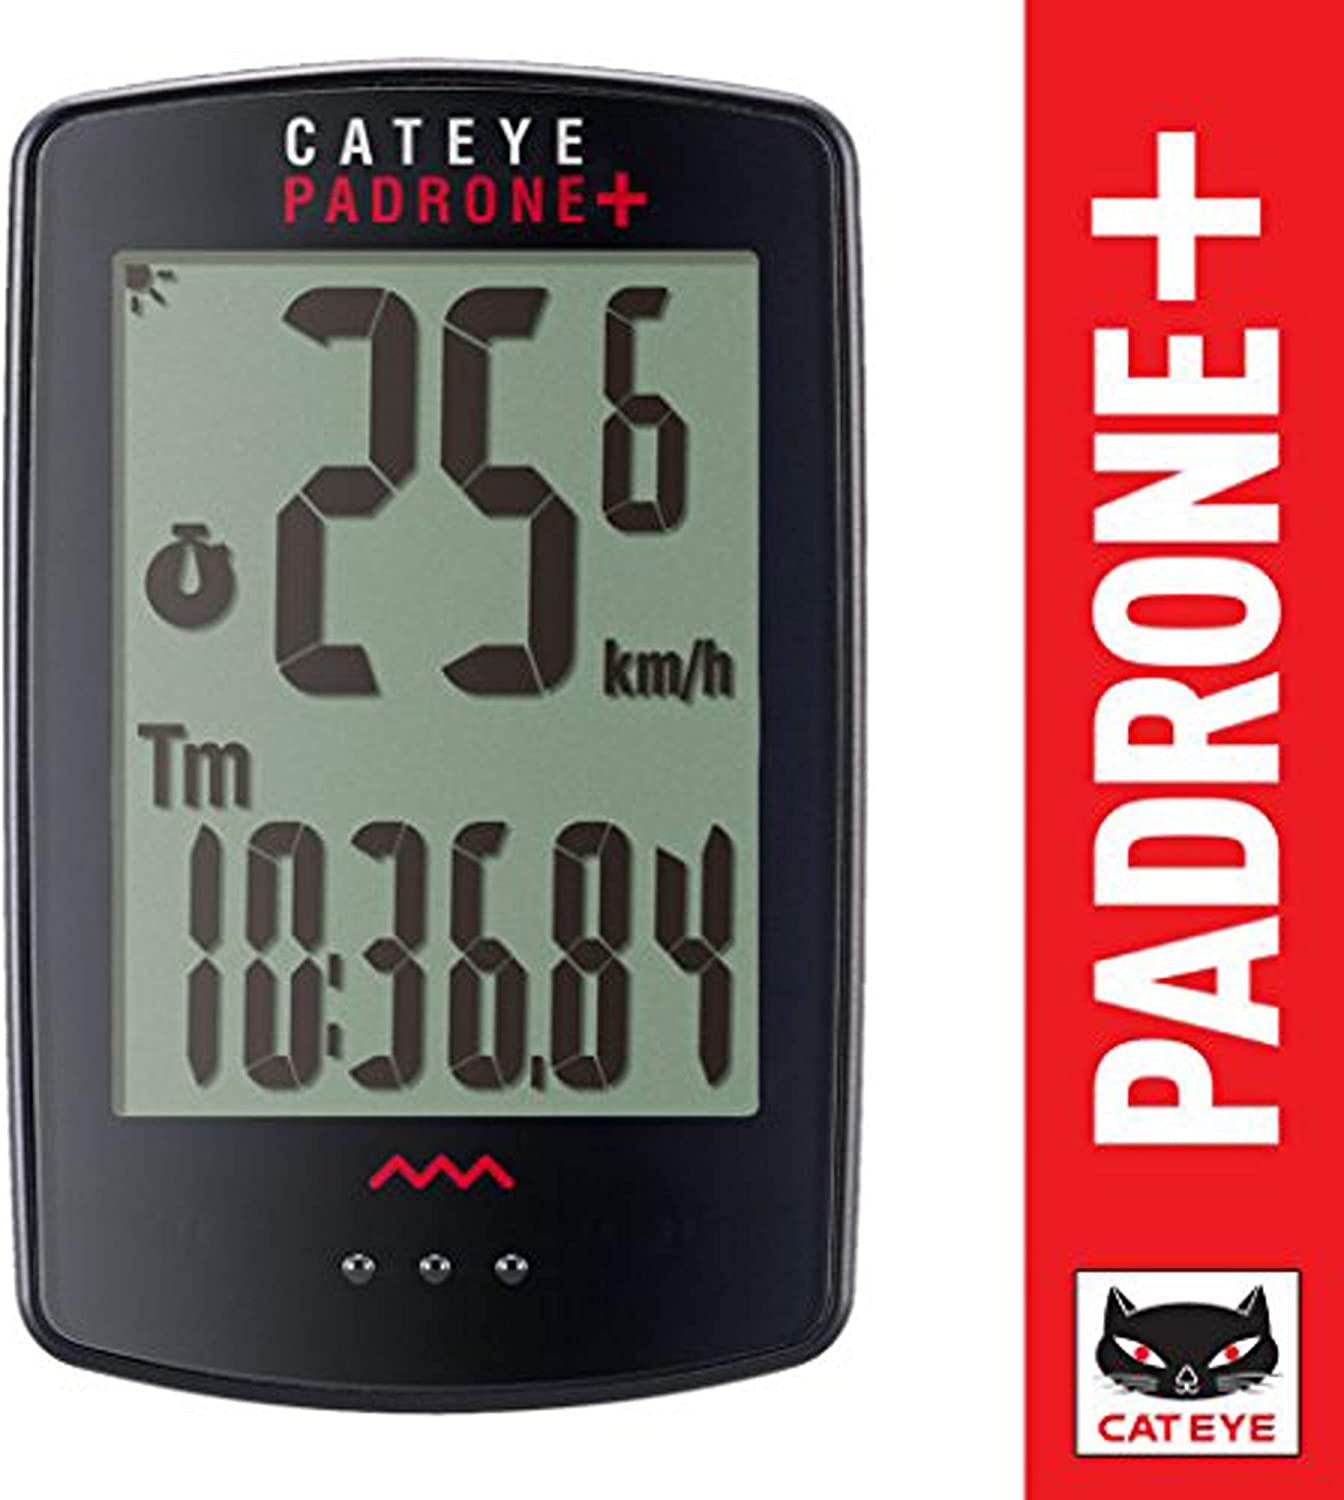 CAT EYE – Padrone Plus Wireless Bike Computer, Black